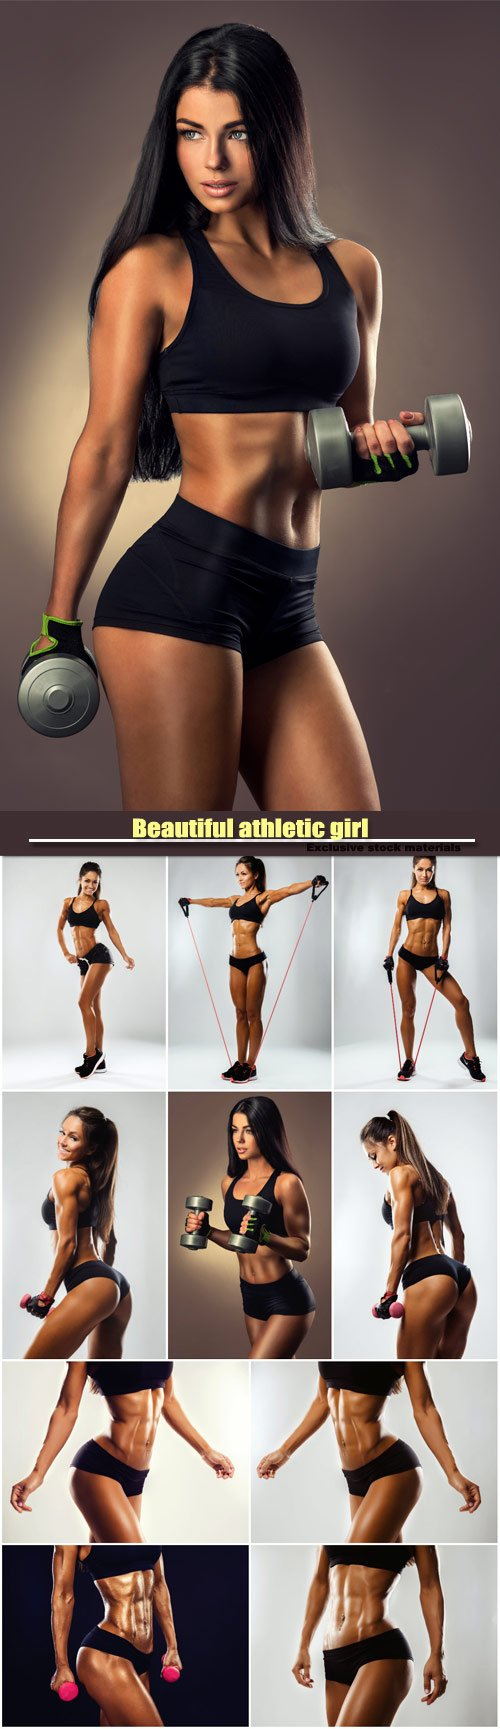 Beautiful athletic girl, exercise